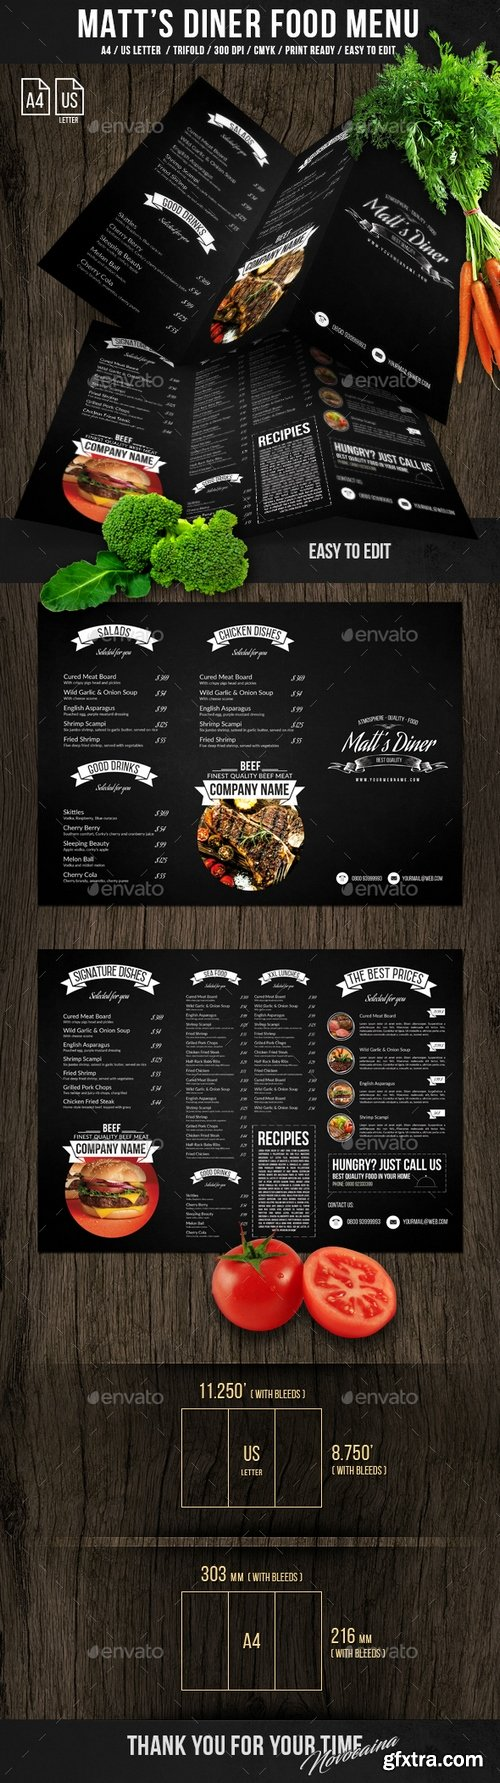 Graphicriver - Matt\'s Diner Trifold A4 and US Letter Menu 21245528